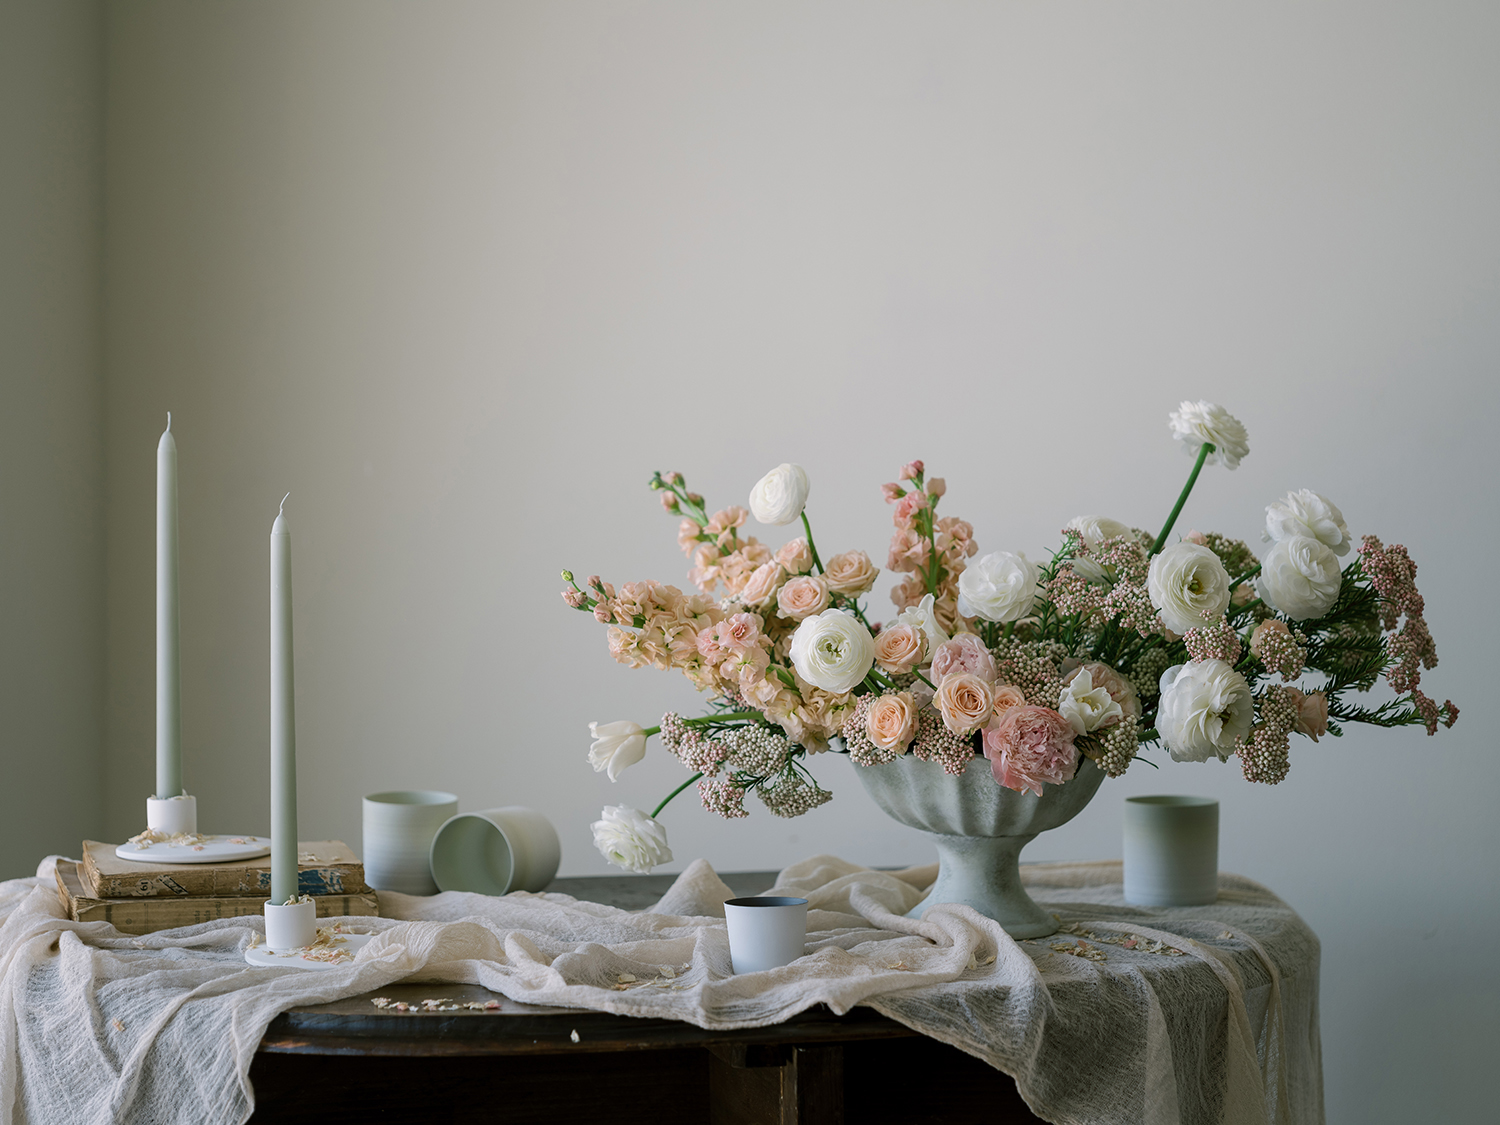 Wedding flowers, inspiration & ideas for your event